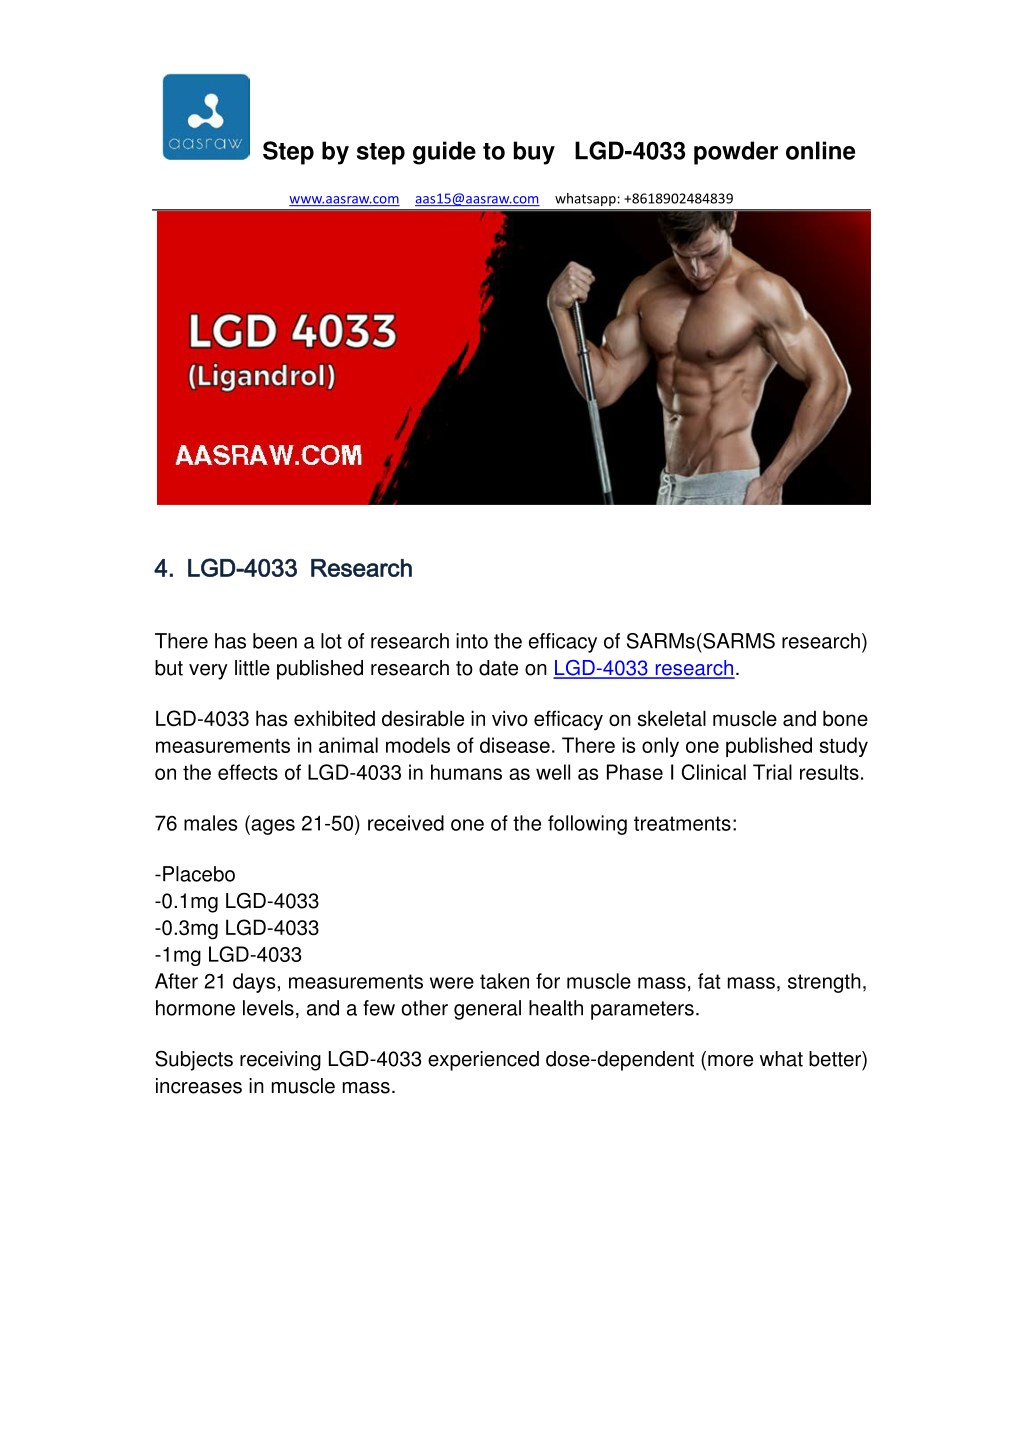 PPT - Step by Step Guide to Buy LGD-4033 Powder Online